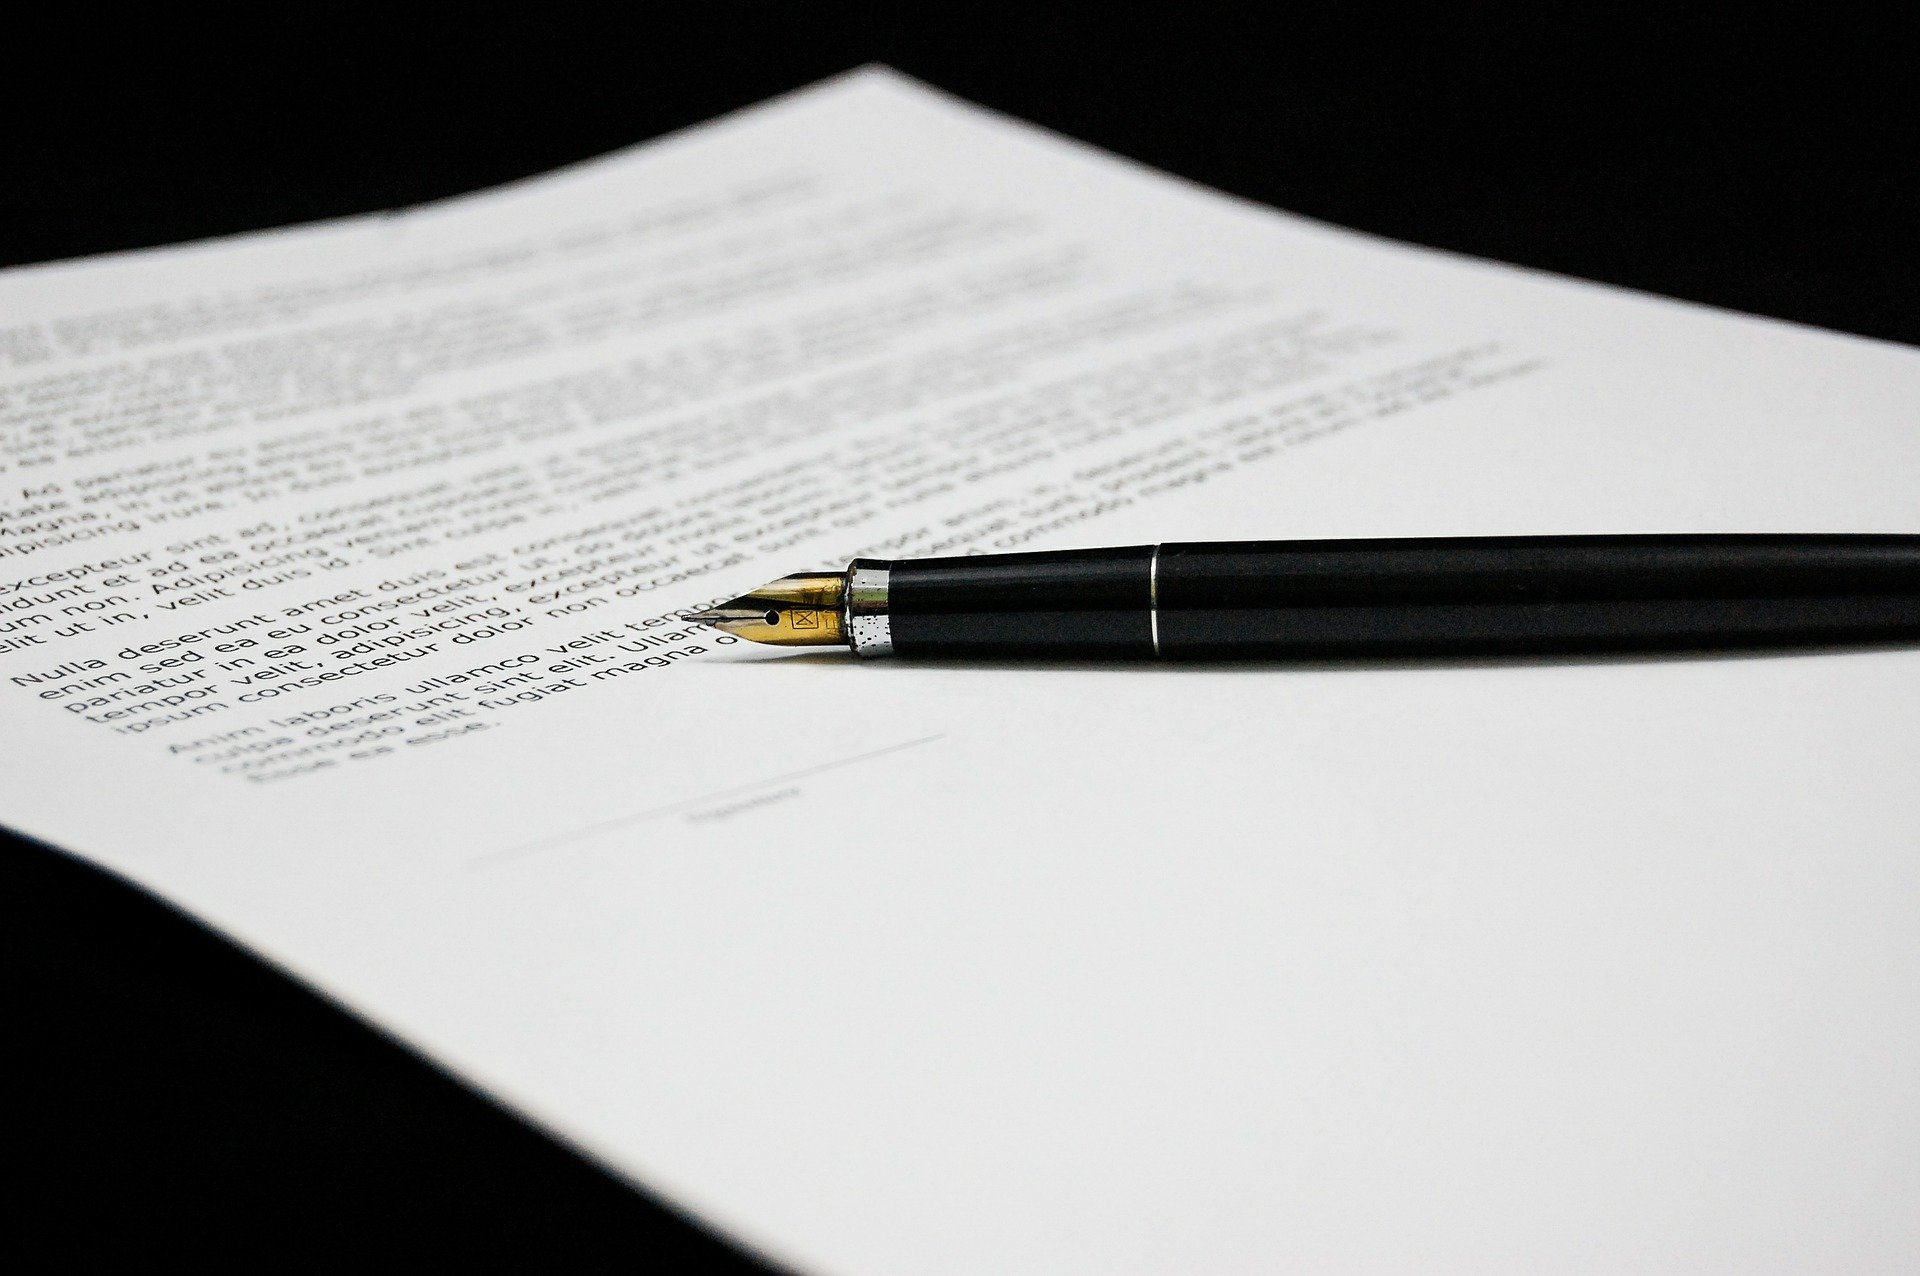 Termination of employment contracts by giving notice